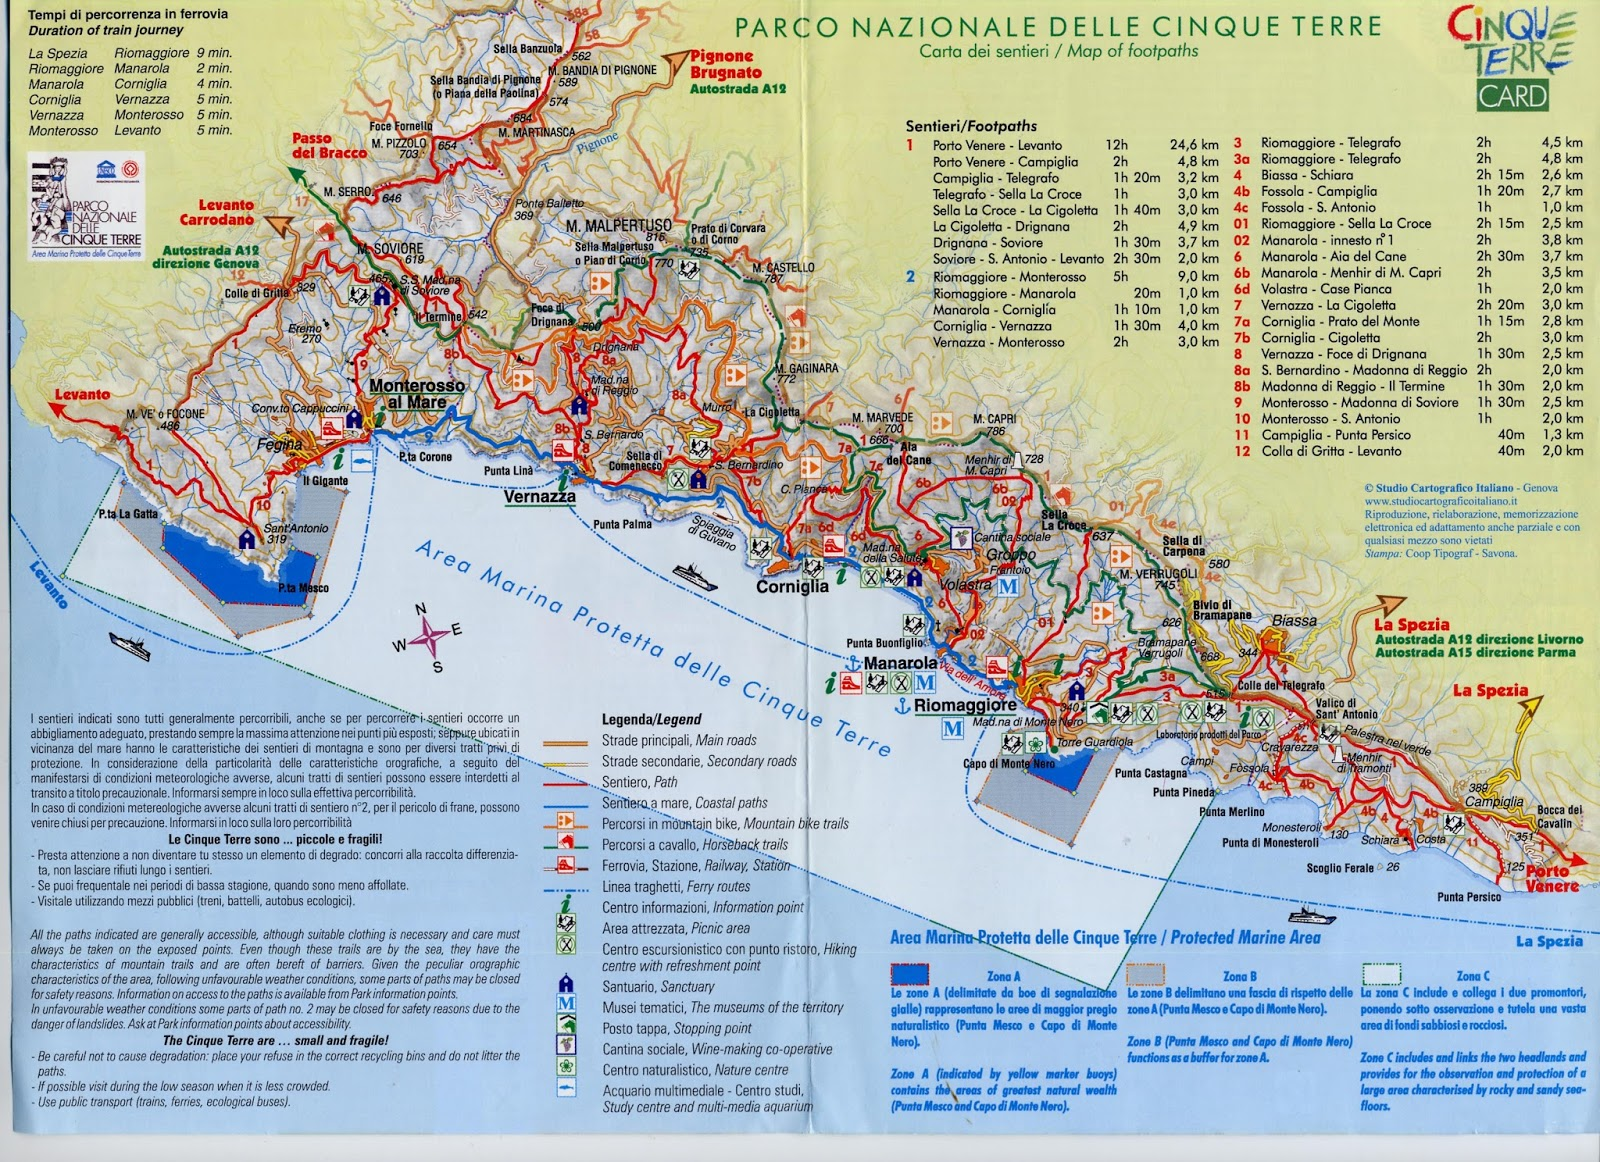 cinque terre trail map (paper version widely available in ct stores) mb mapfile link mb map file link. a path to lunch ☀cinque terre guide